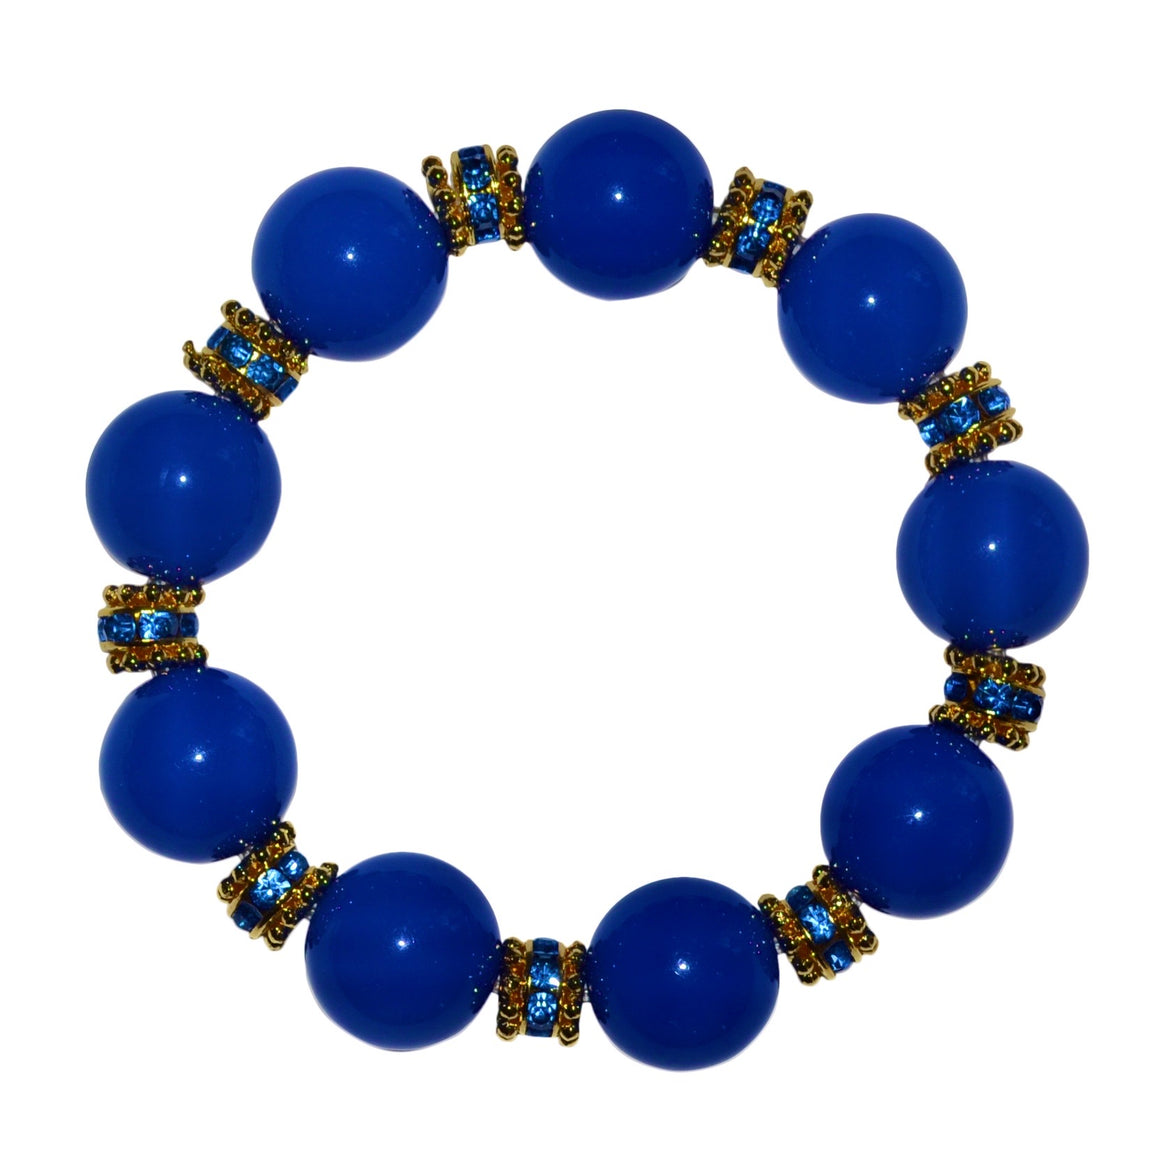 ANYTIME BANGLE IN COBALT